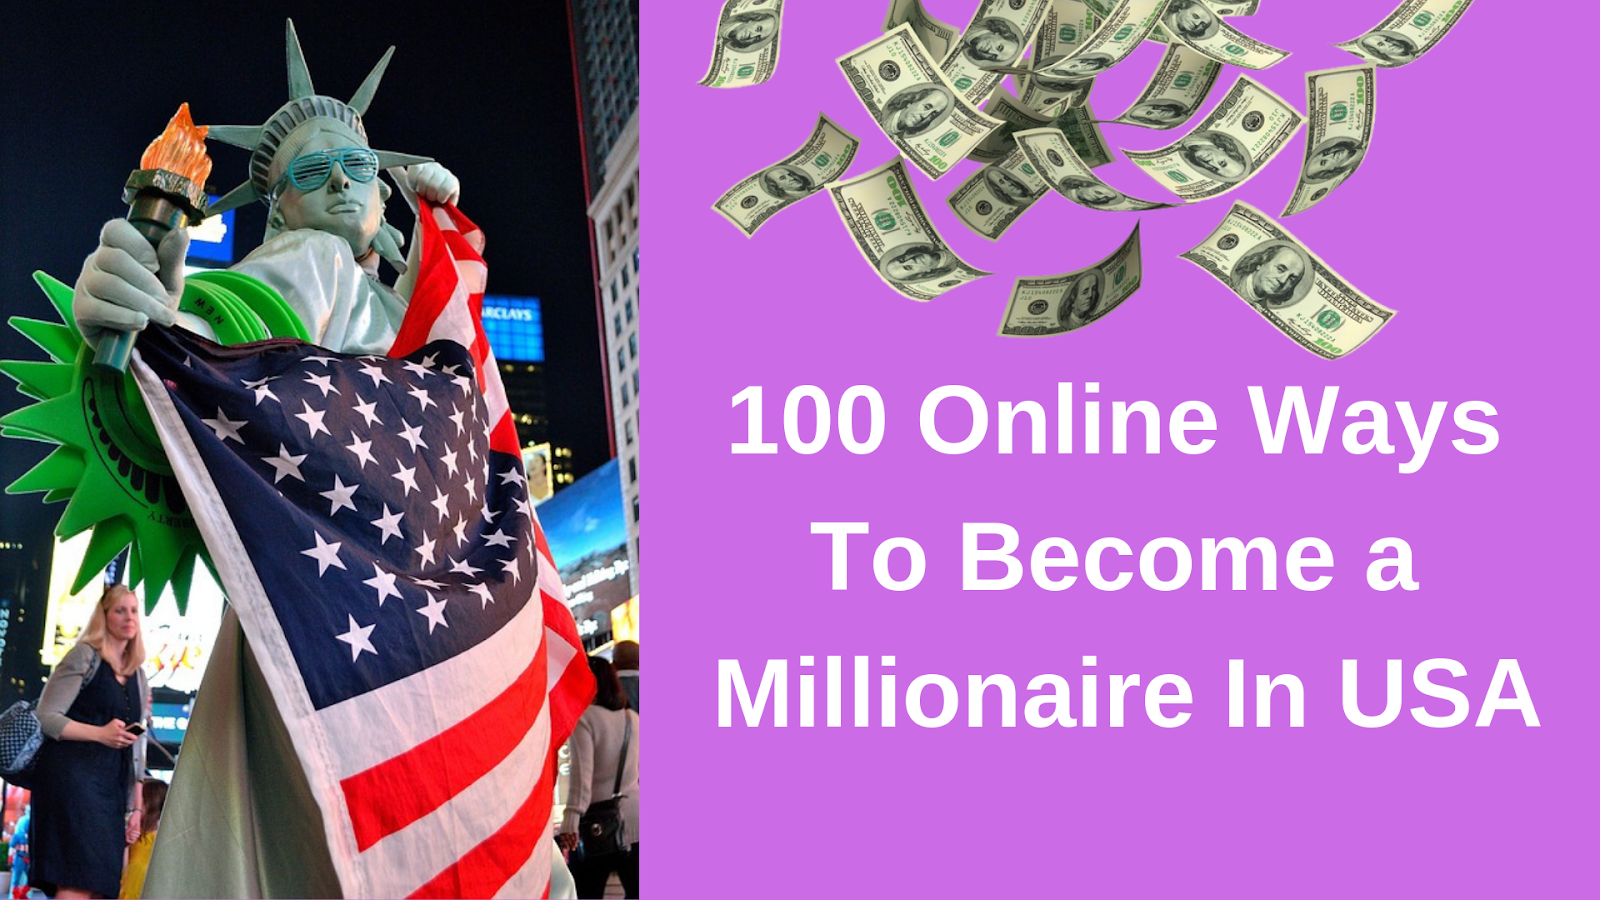 100 Online Ways To Become A Millionaire In Usa